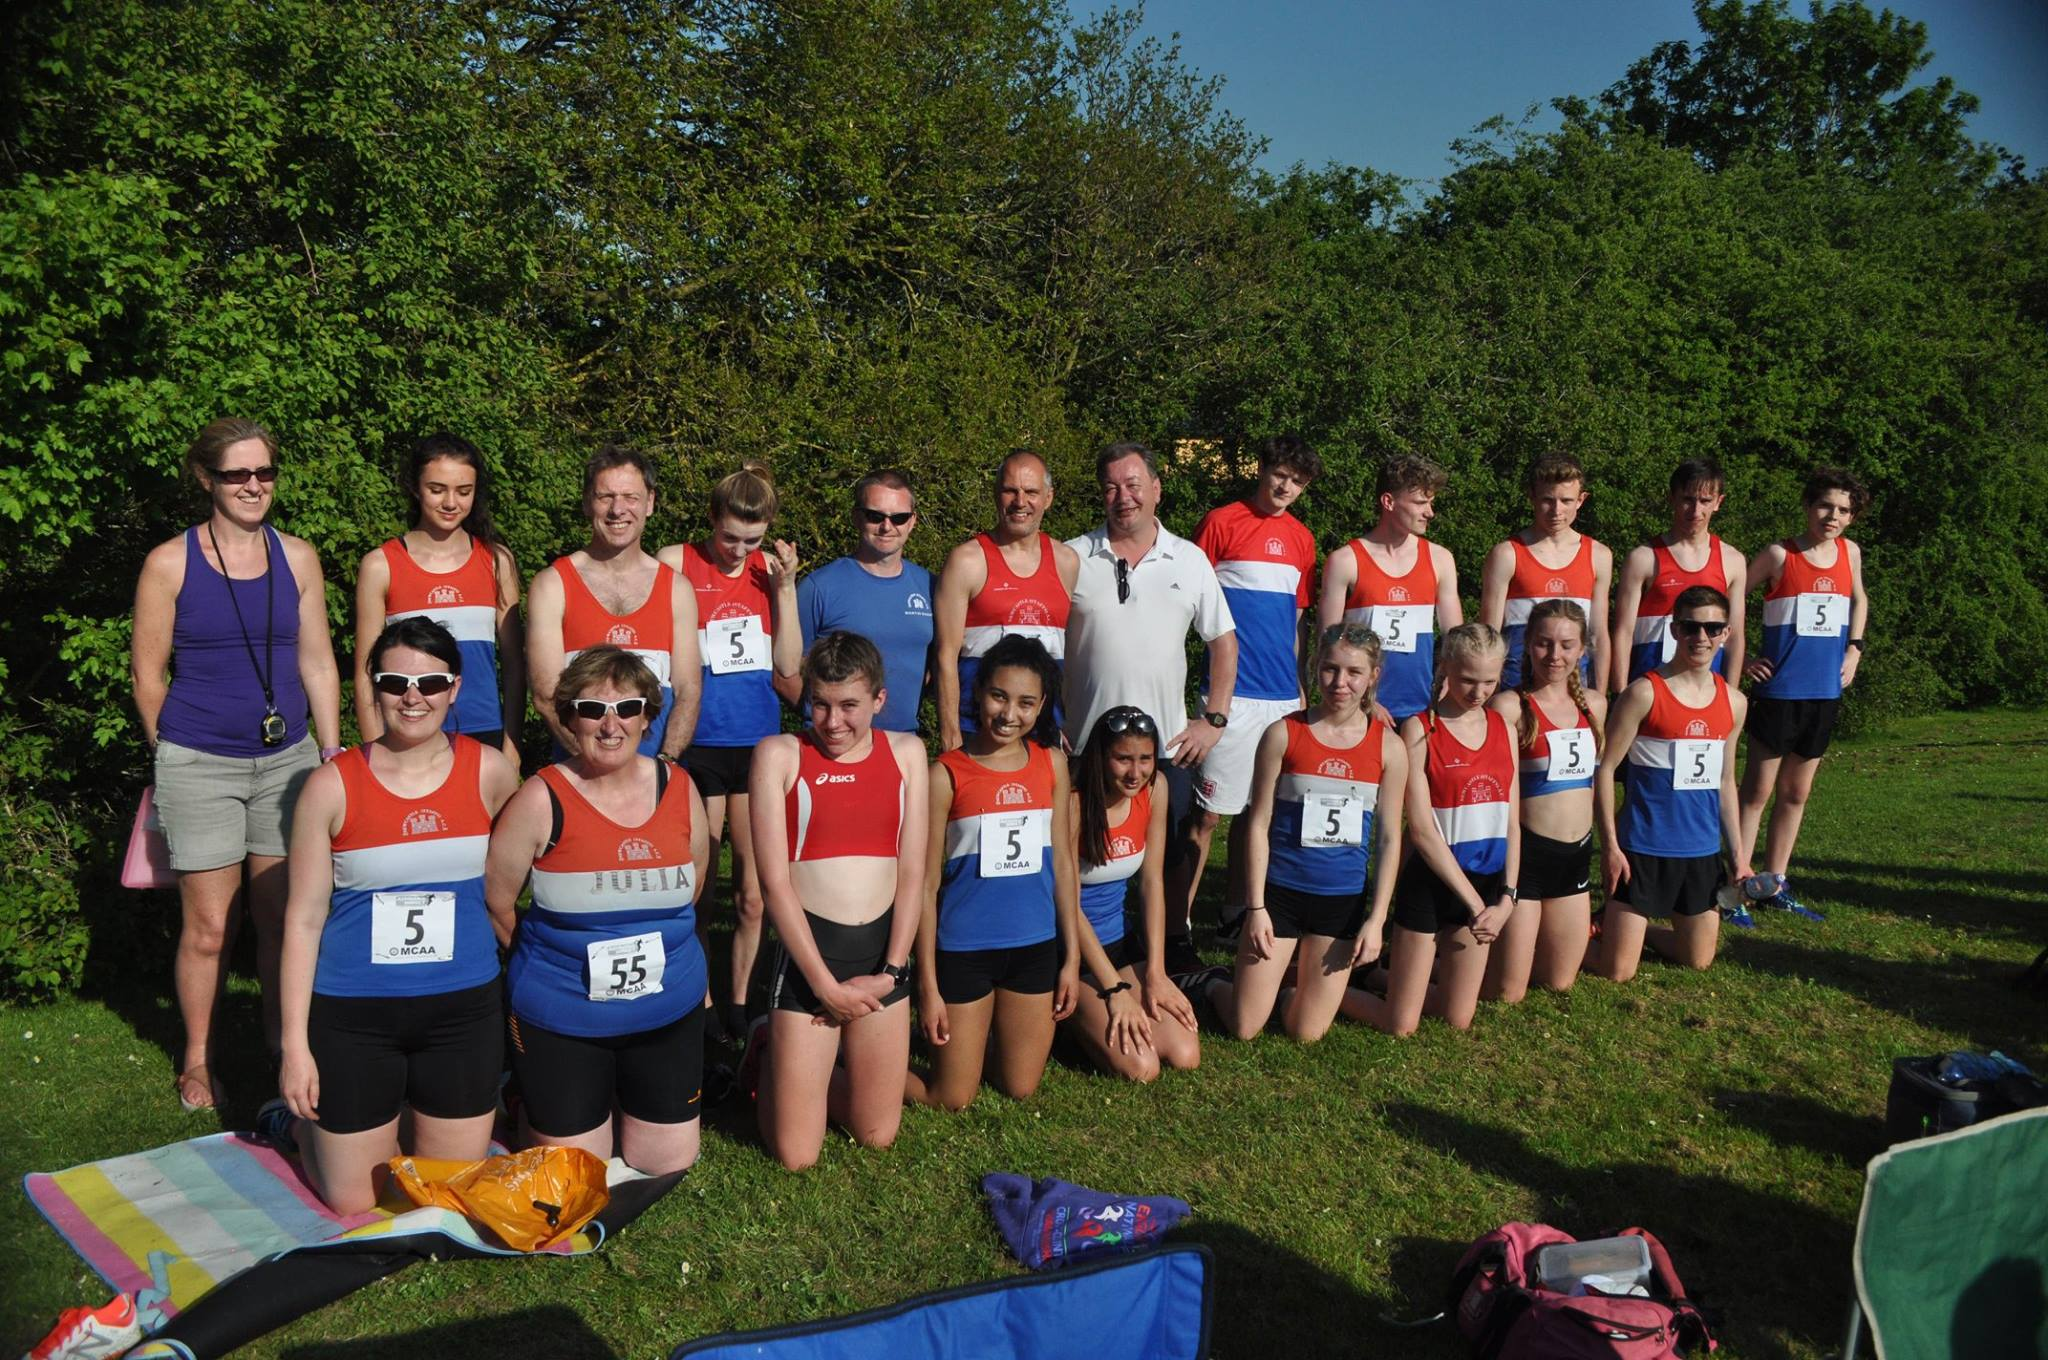 Midland Track & Field League Fixture 1 – 6/5/2018